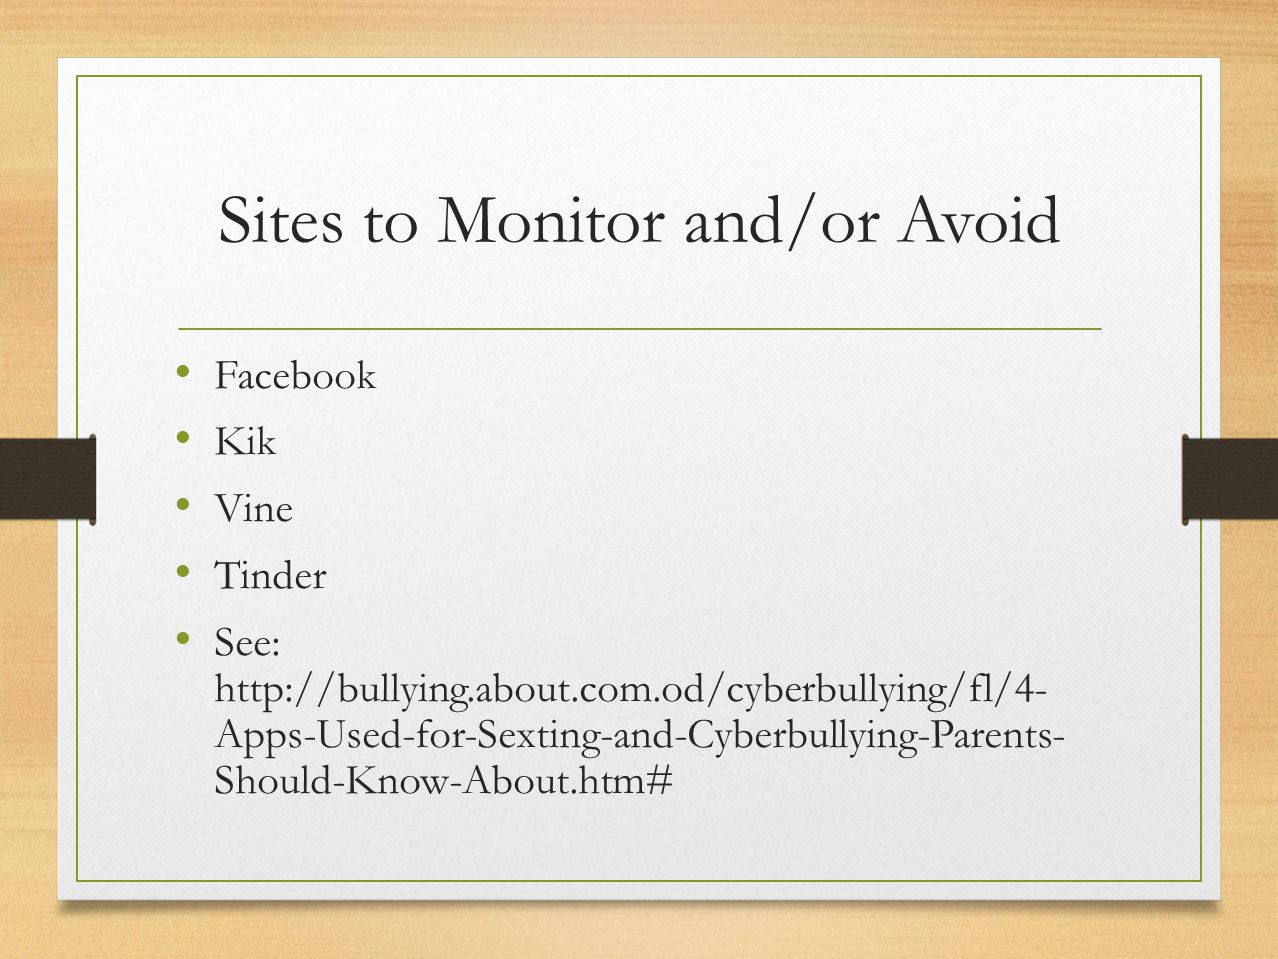 Sites to Monitor and/or Avoid Facebook Kik Vine Tinder See: http://bullying.about.com.od/cyberbullying/fl/4- Apps-Used-for-Sexting-and-Cyberbullying-P